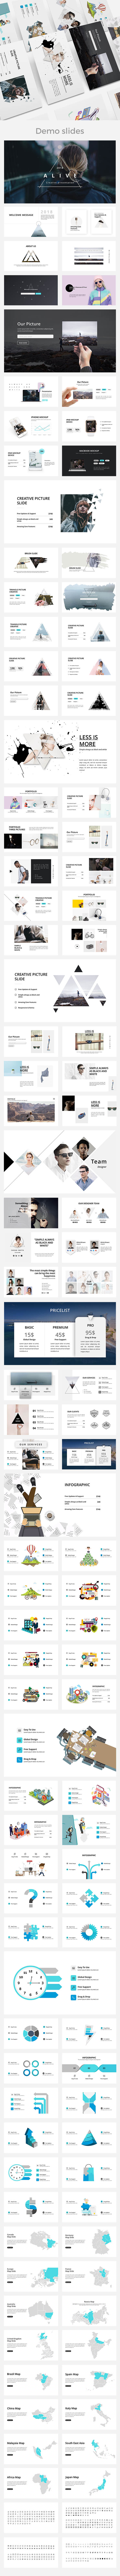 Alive Creative Google Slide Template - Google Slides Presentation Templates